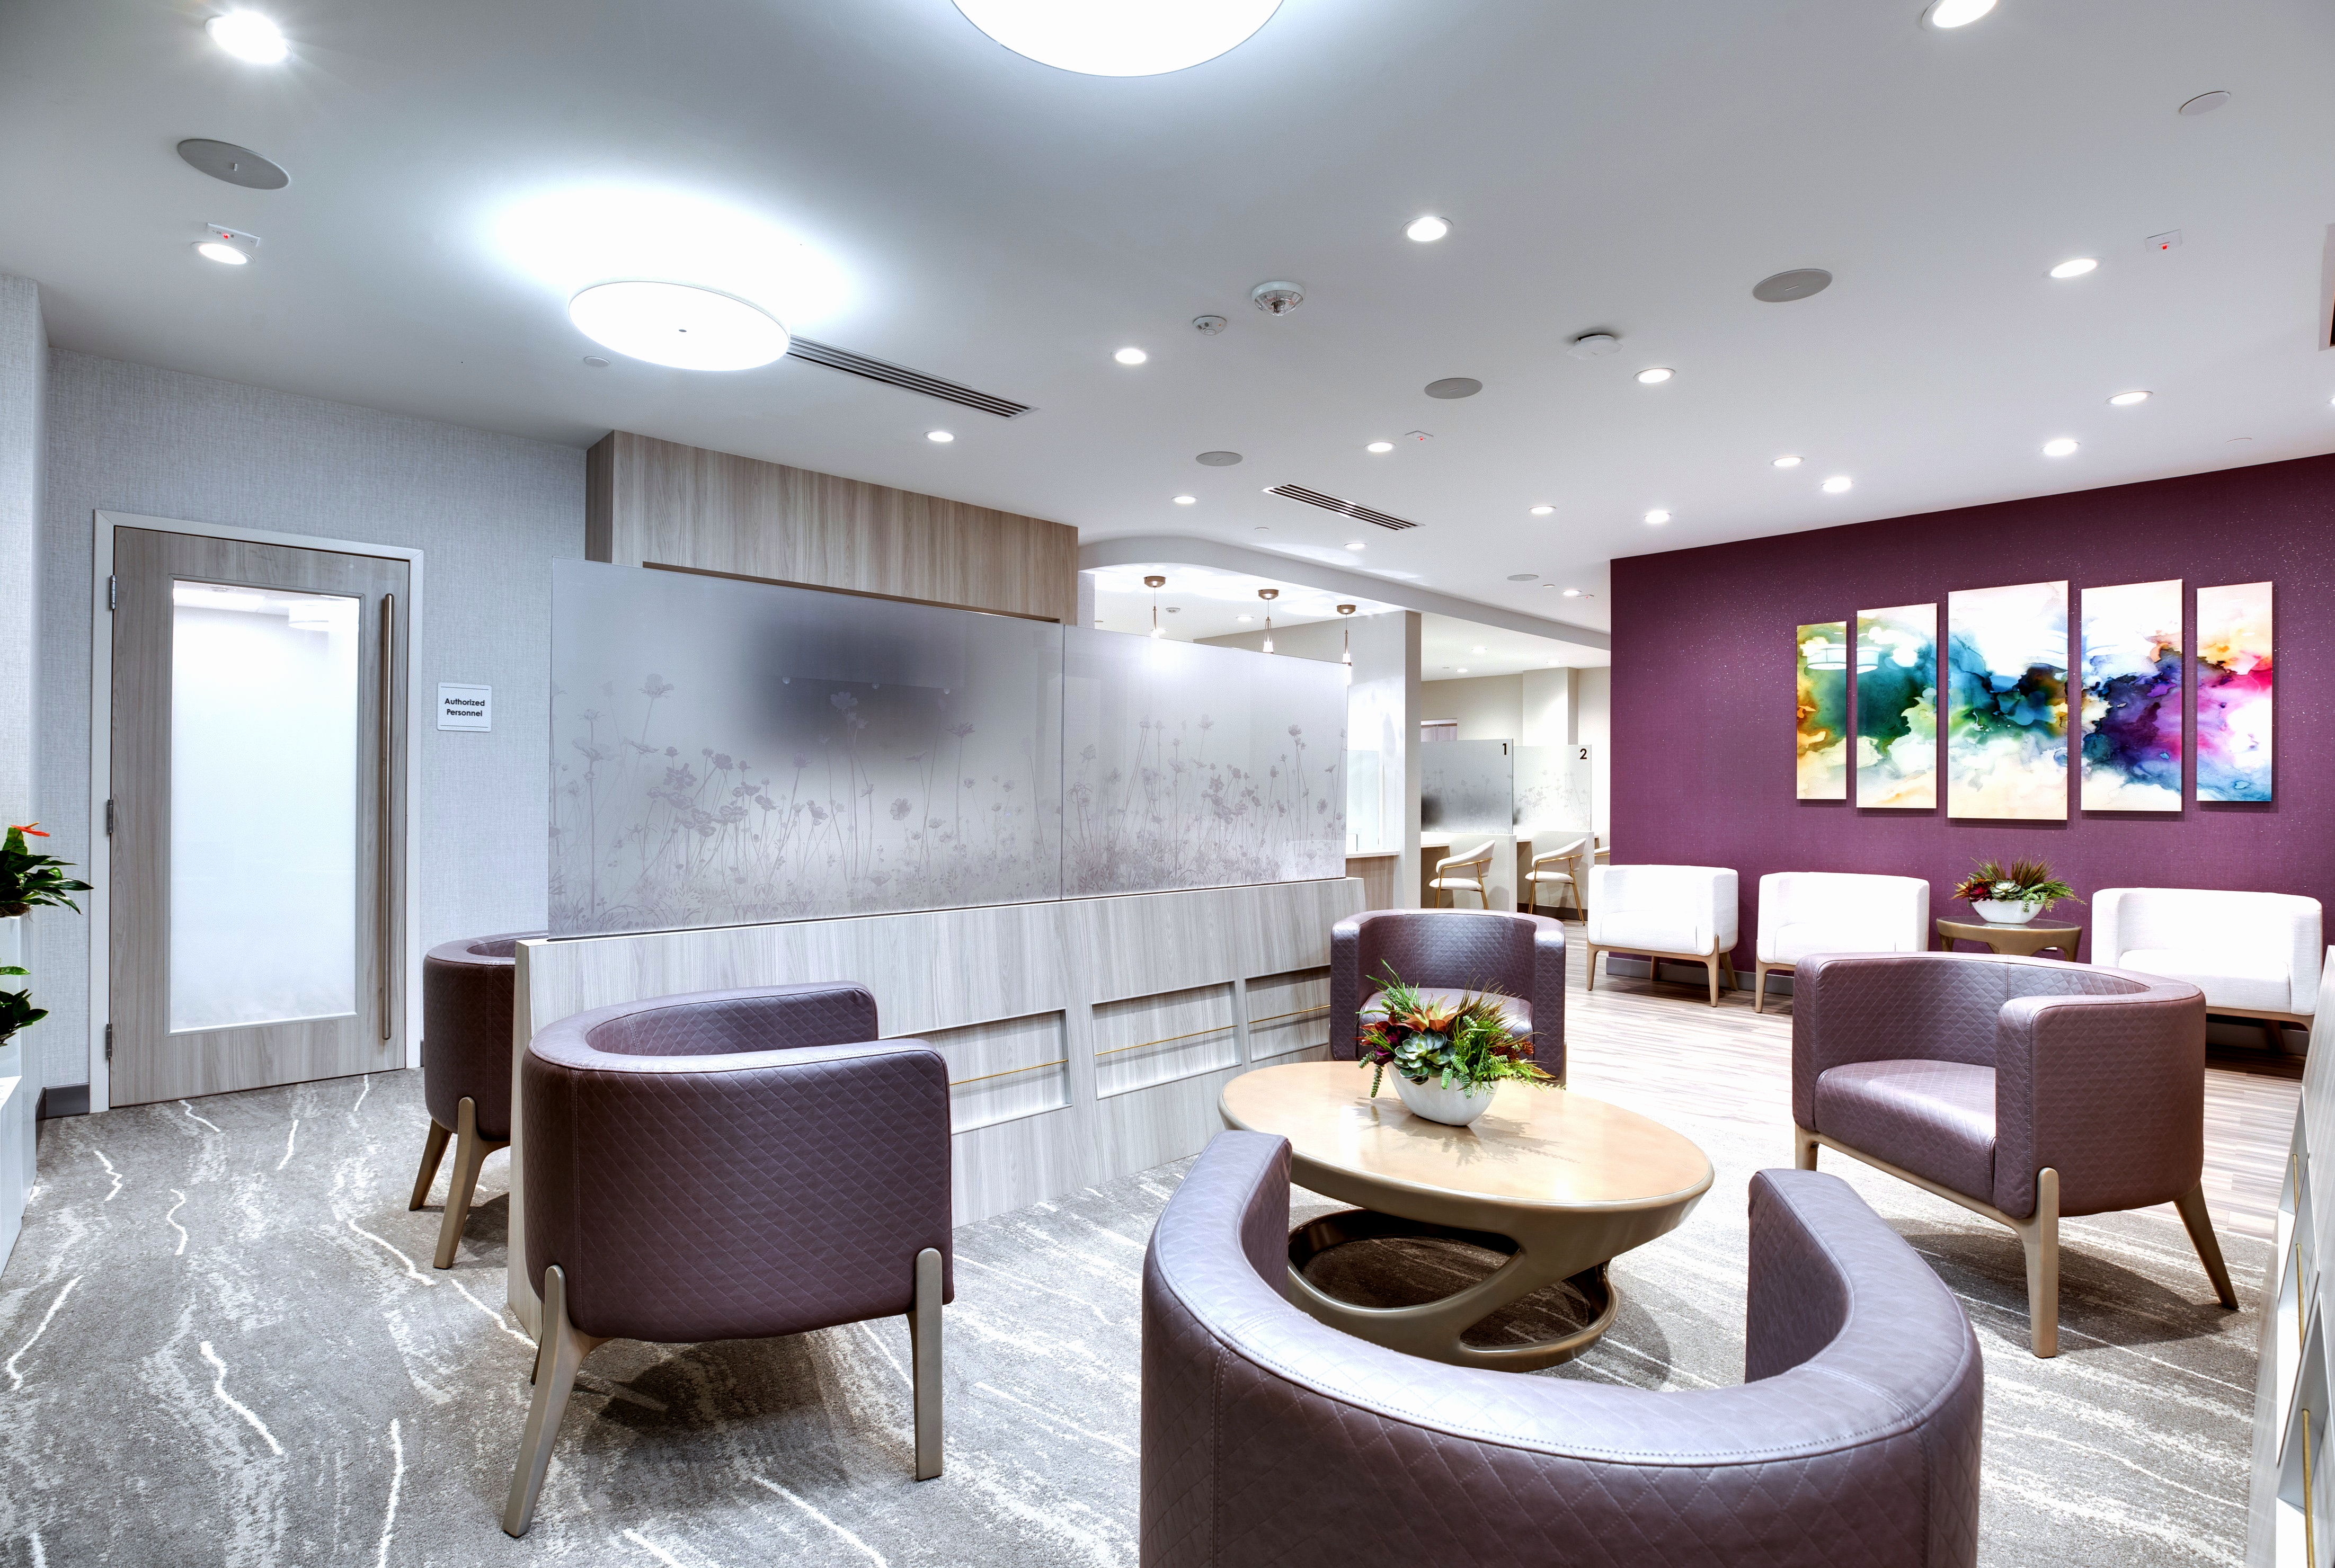 A lot of holistic design went into Fairfax Radiology Breast Center of Loudoun. Because the build-out started just as the COVID-19 pandemic began, the team, including architects and medical professionals, was able to put in the initial design extra safety benefits for the patients and the 32-member staff such as a touchless entrance door and glass wall sections. There's even an app to control flow from the time patients arrive in the parking lot.